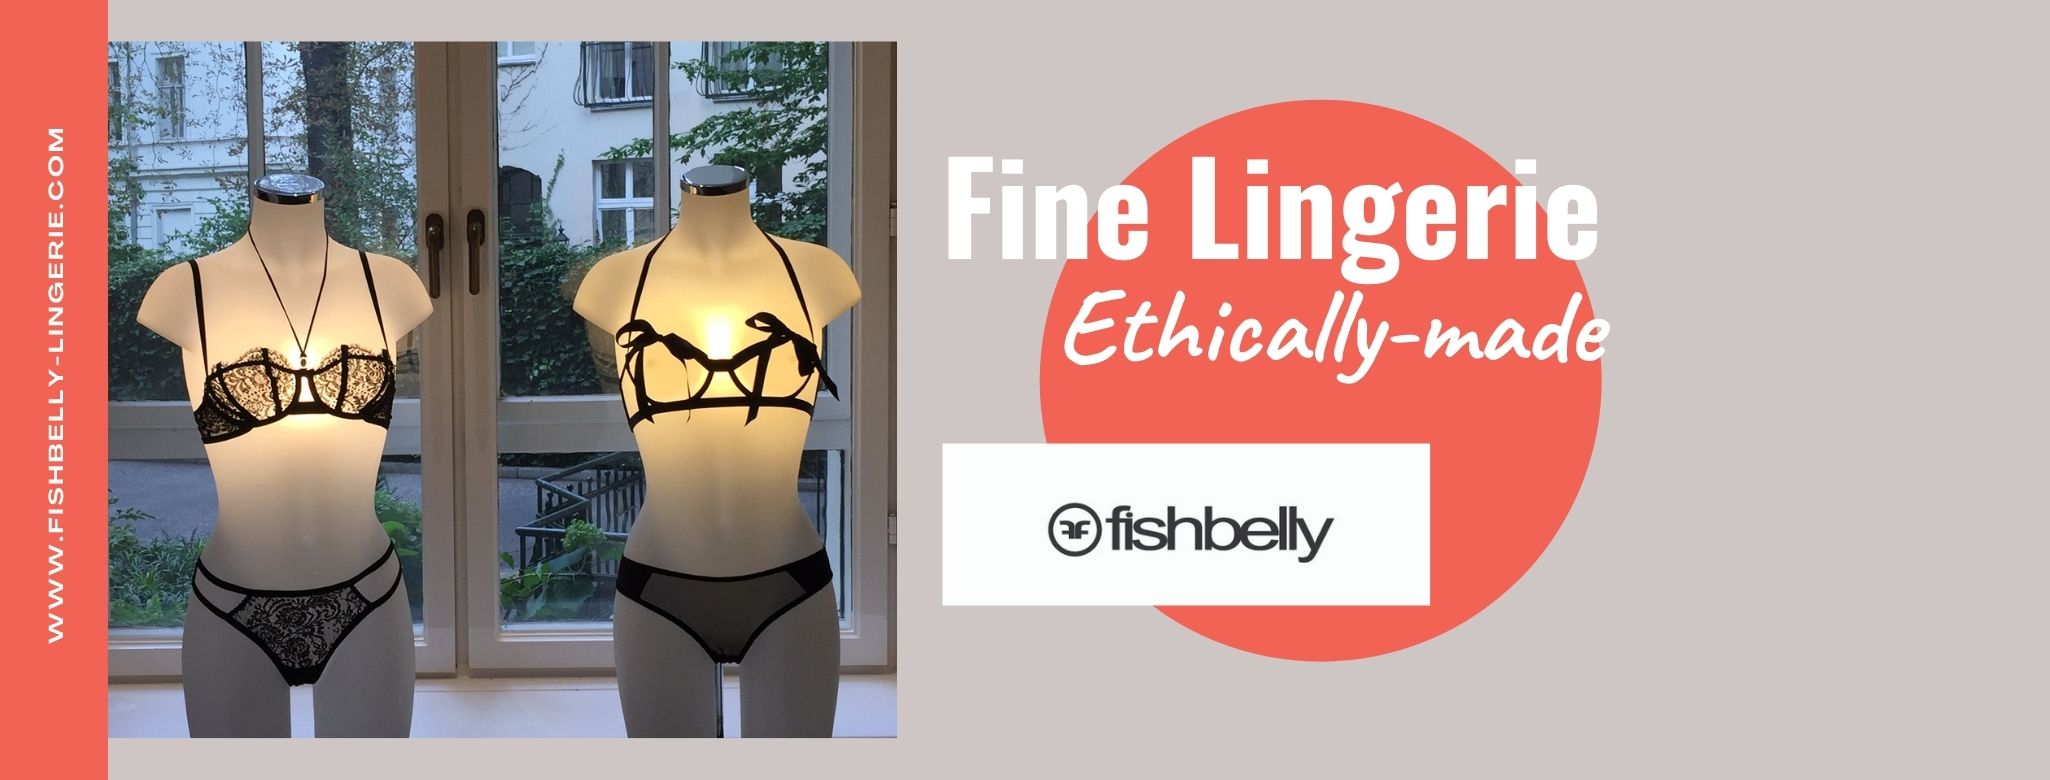 fishbelly Berlin ethically made Lingerie